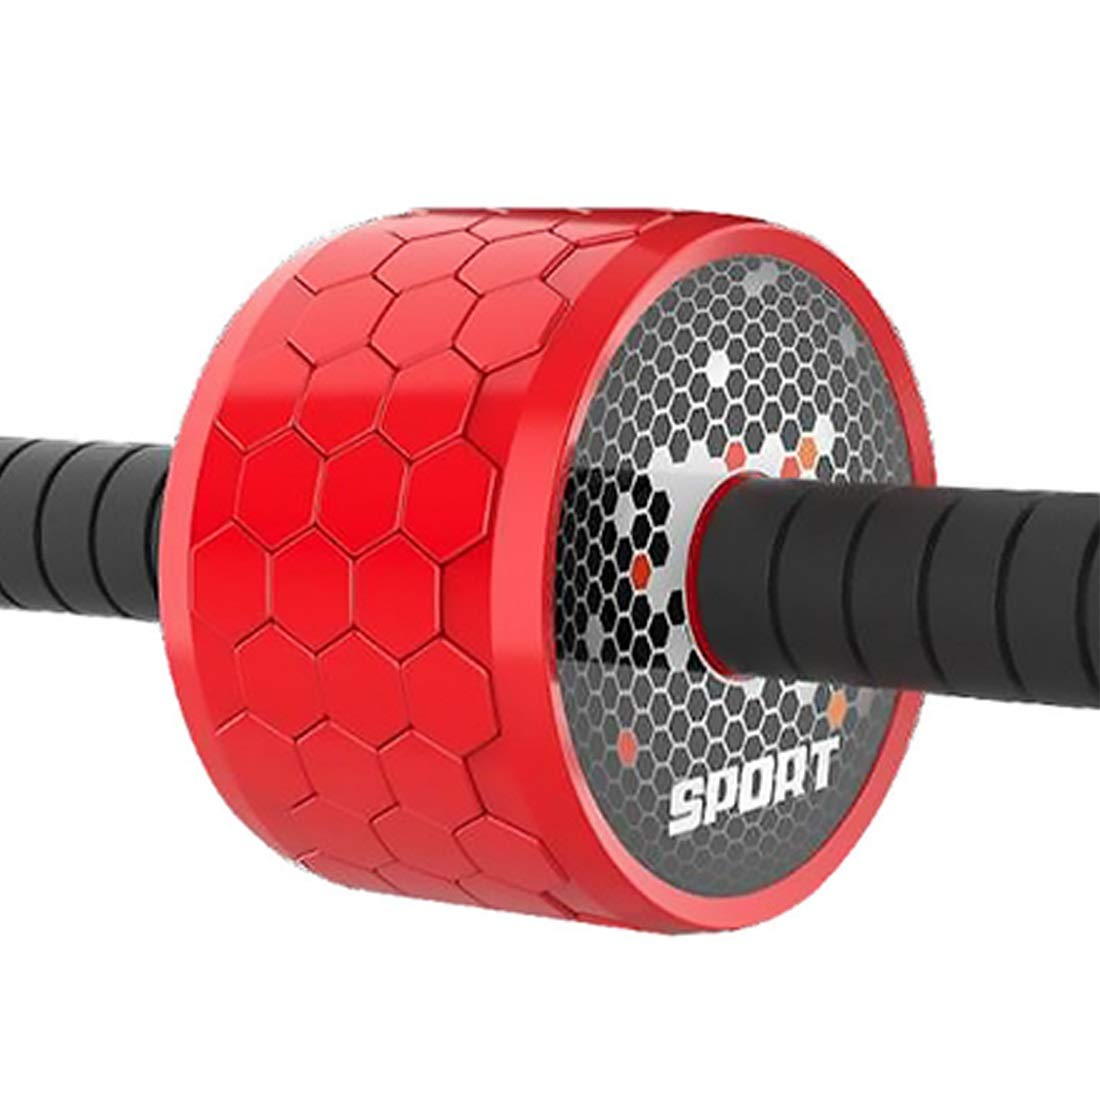 Sugoishop Wheel Roller Kit AB Roller Pro with Push-Up Bar, Jump Rope and Knee Pad Perfect Abdominal Core Carver Fitness Workout (Color : Red)